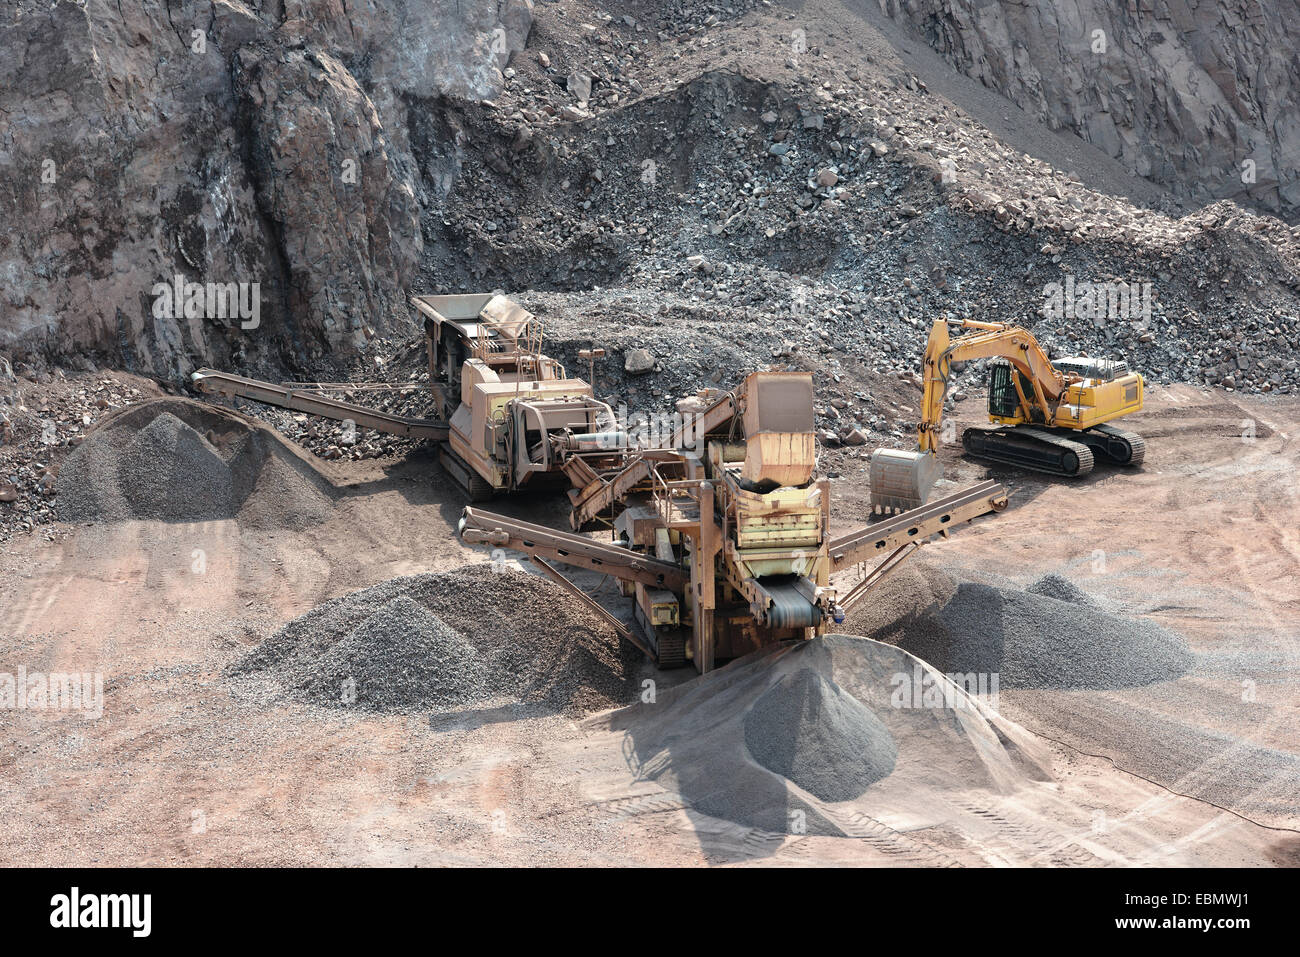 stone crusher in surface mine - Stock Image